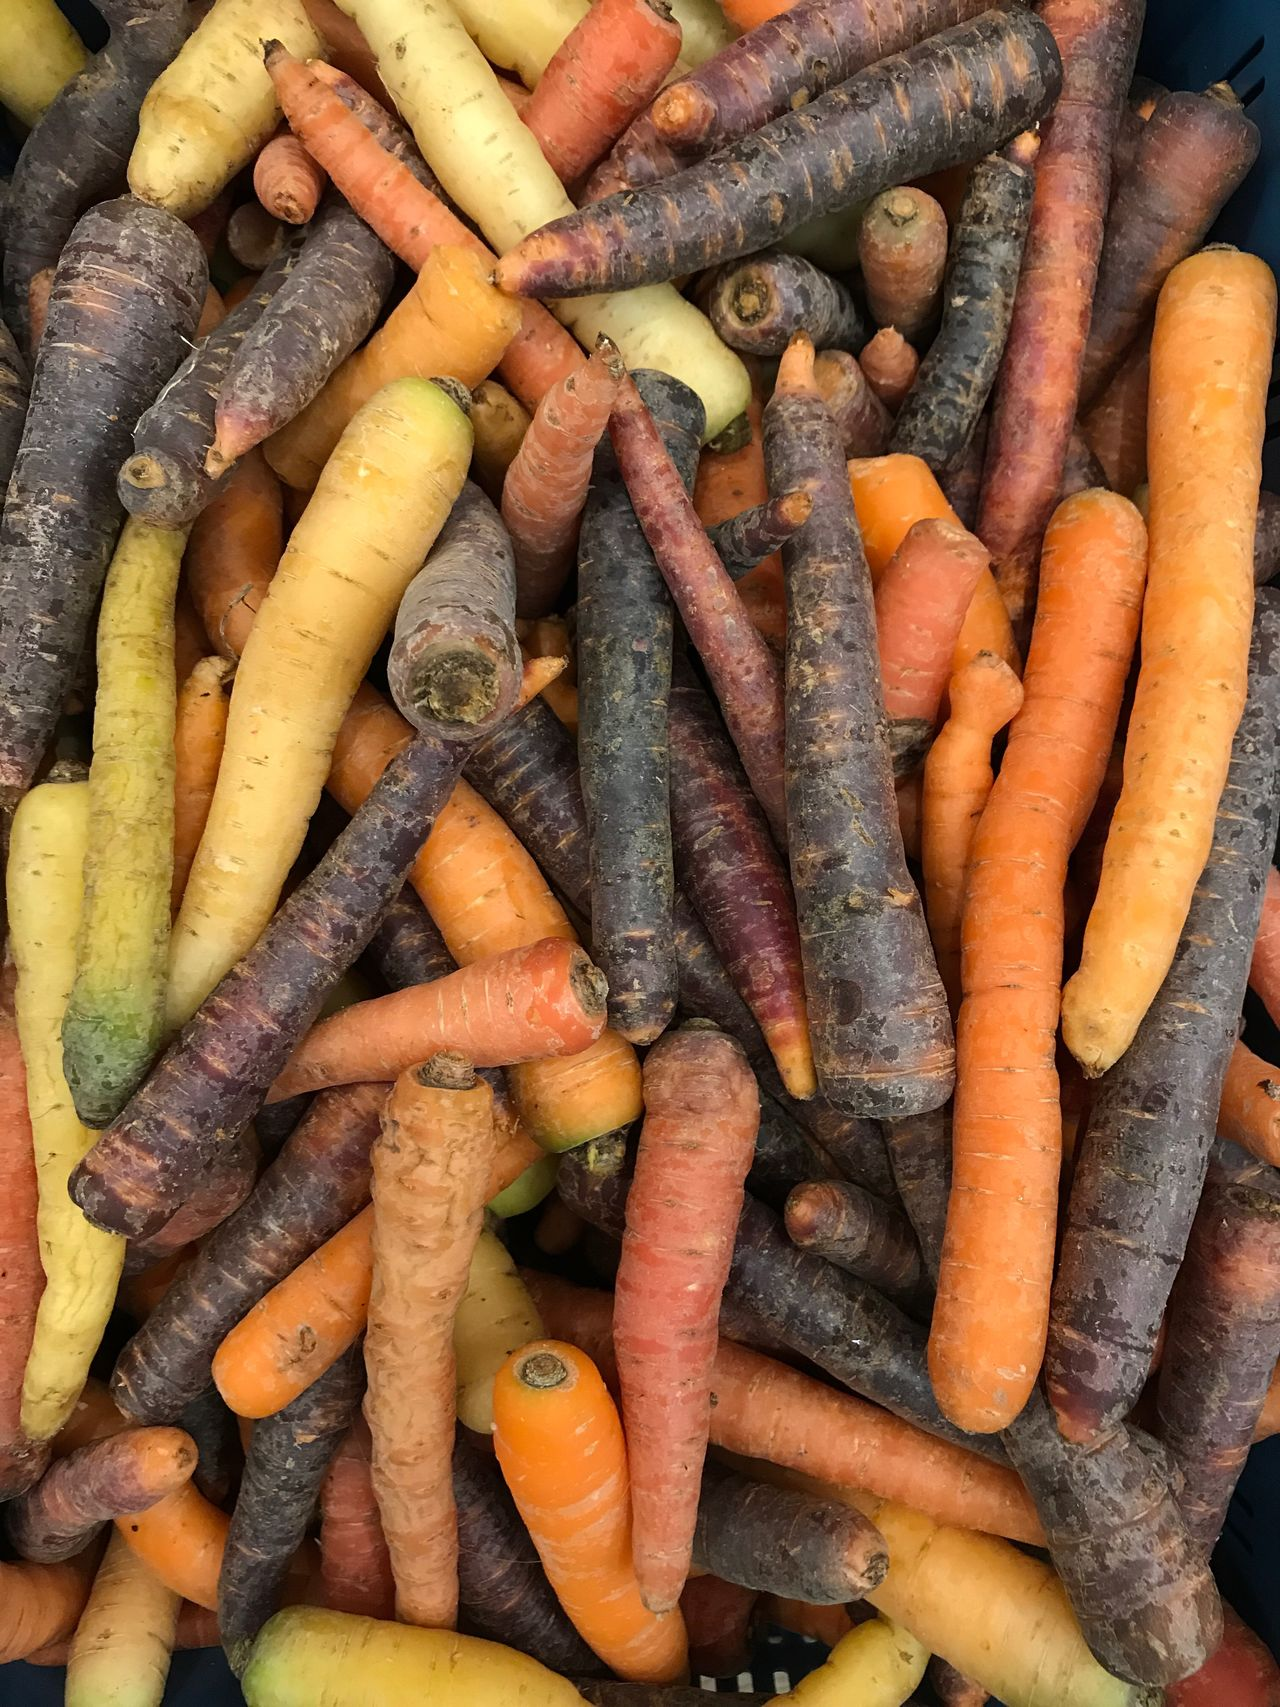 Carrot Vegetable Food And Drink Root Vegetable Large Group Of Objects Still Life Orange Color Abundance Healthy Eating High Angle View Food Backgrounds Freshness Retail  No People Full Frame Market Indoors  Raw Potato Multi Colored